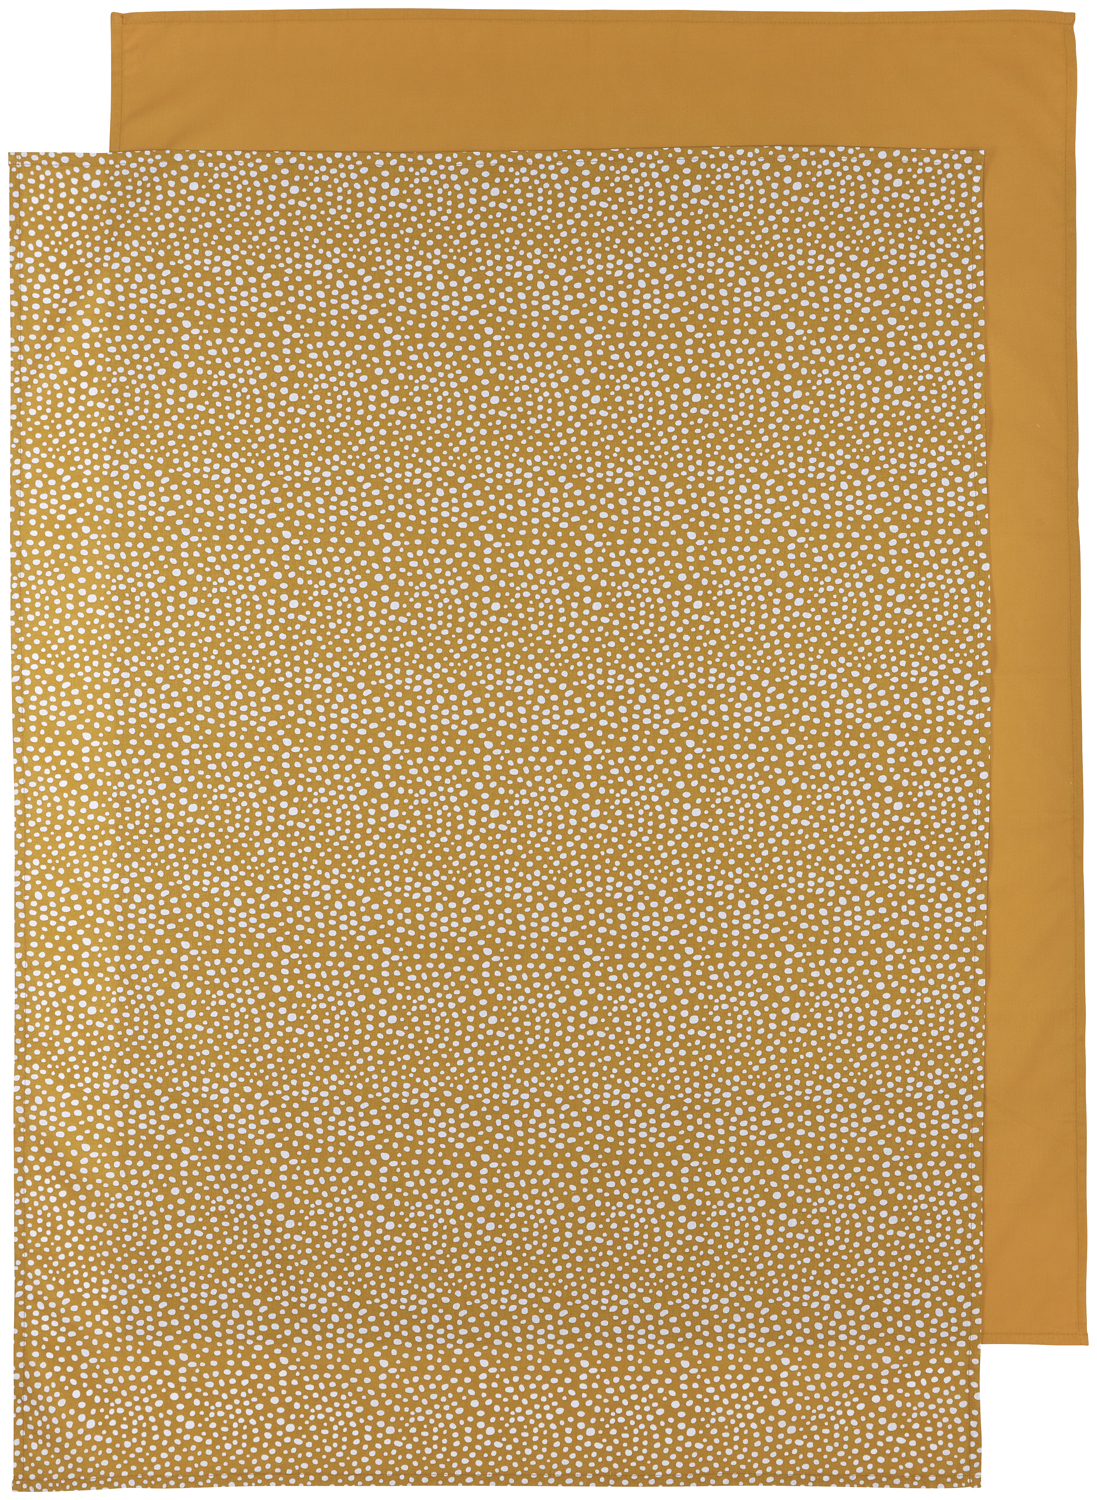 Wieglaken 2-Pack Cheetah/Uni - Honey Gold - 75x100cm